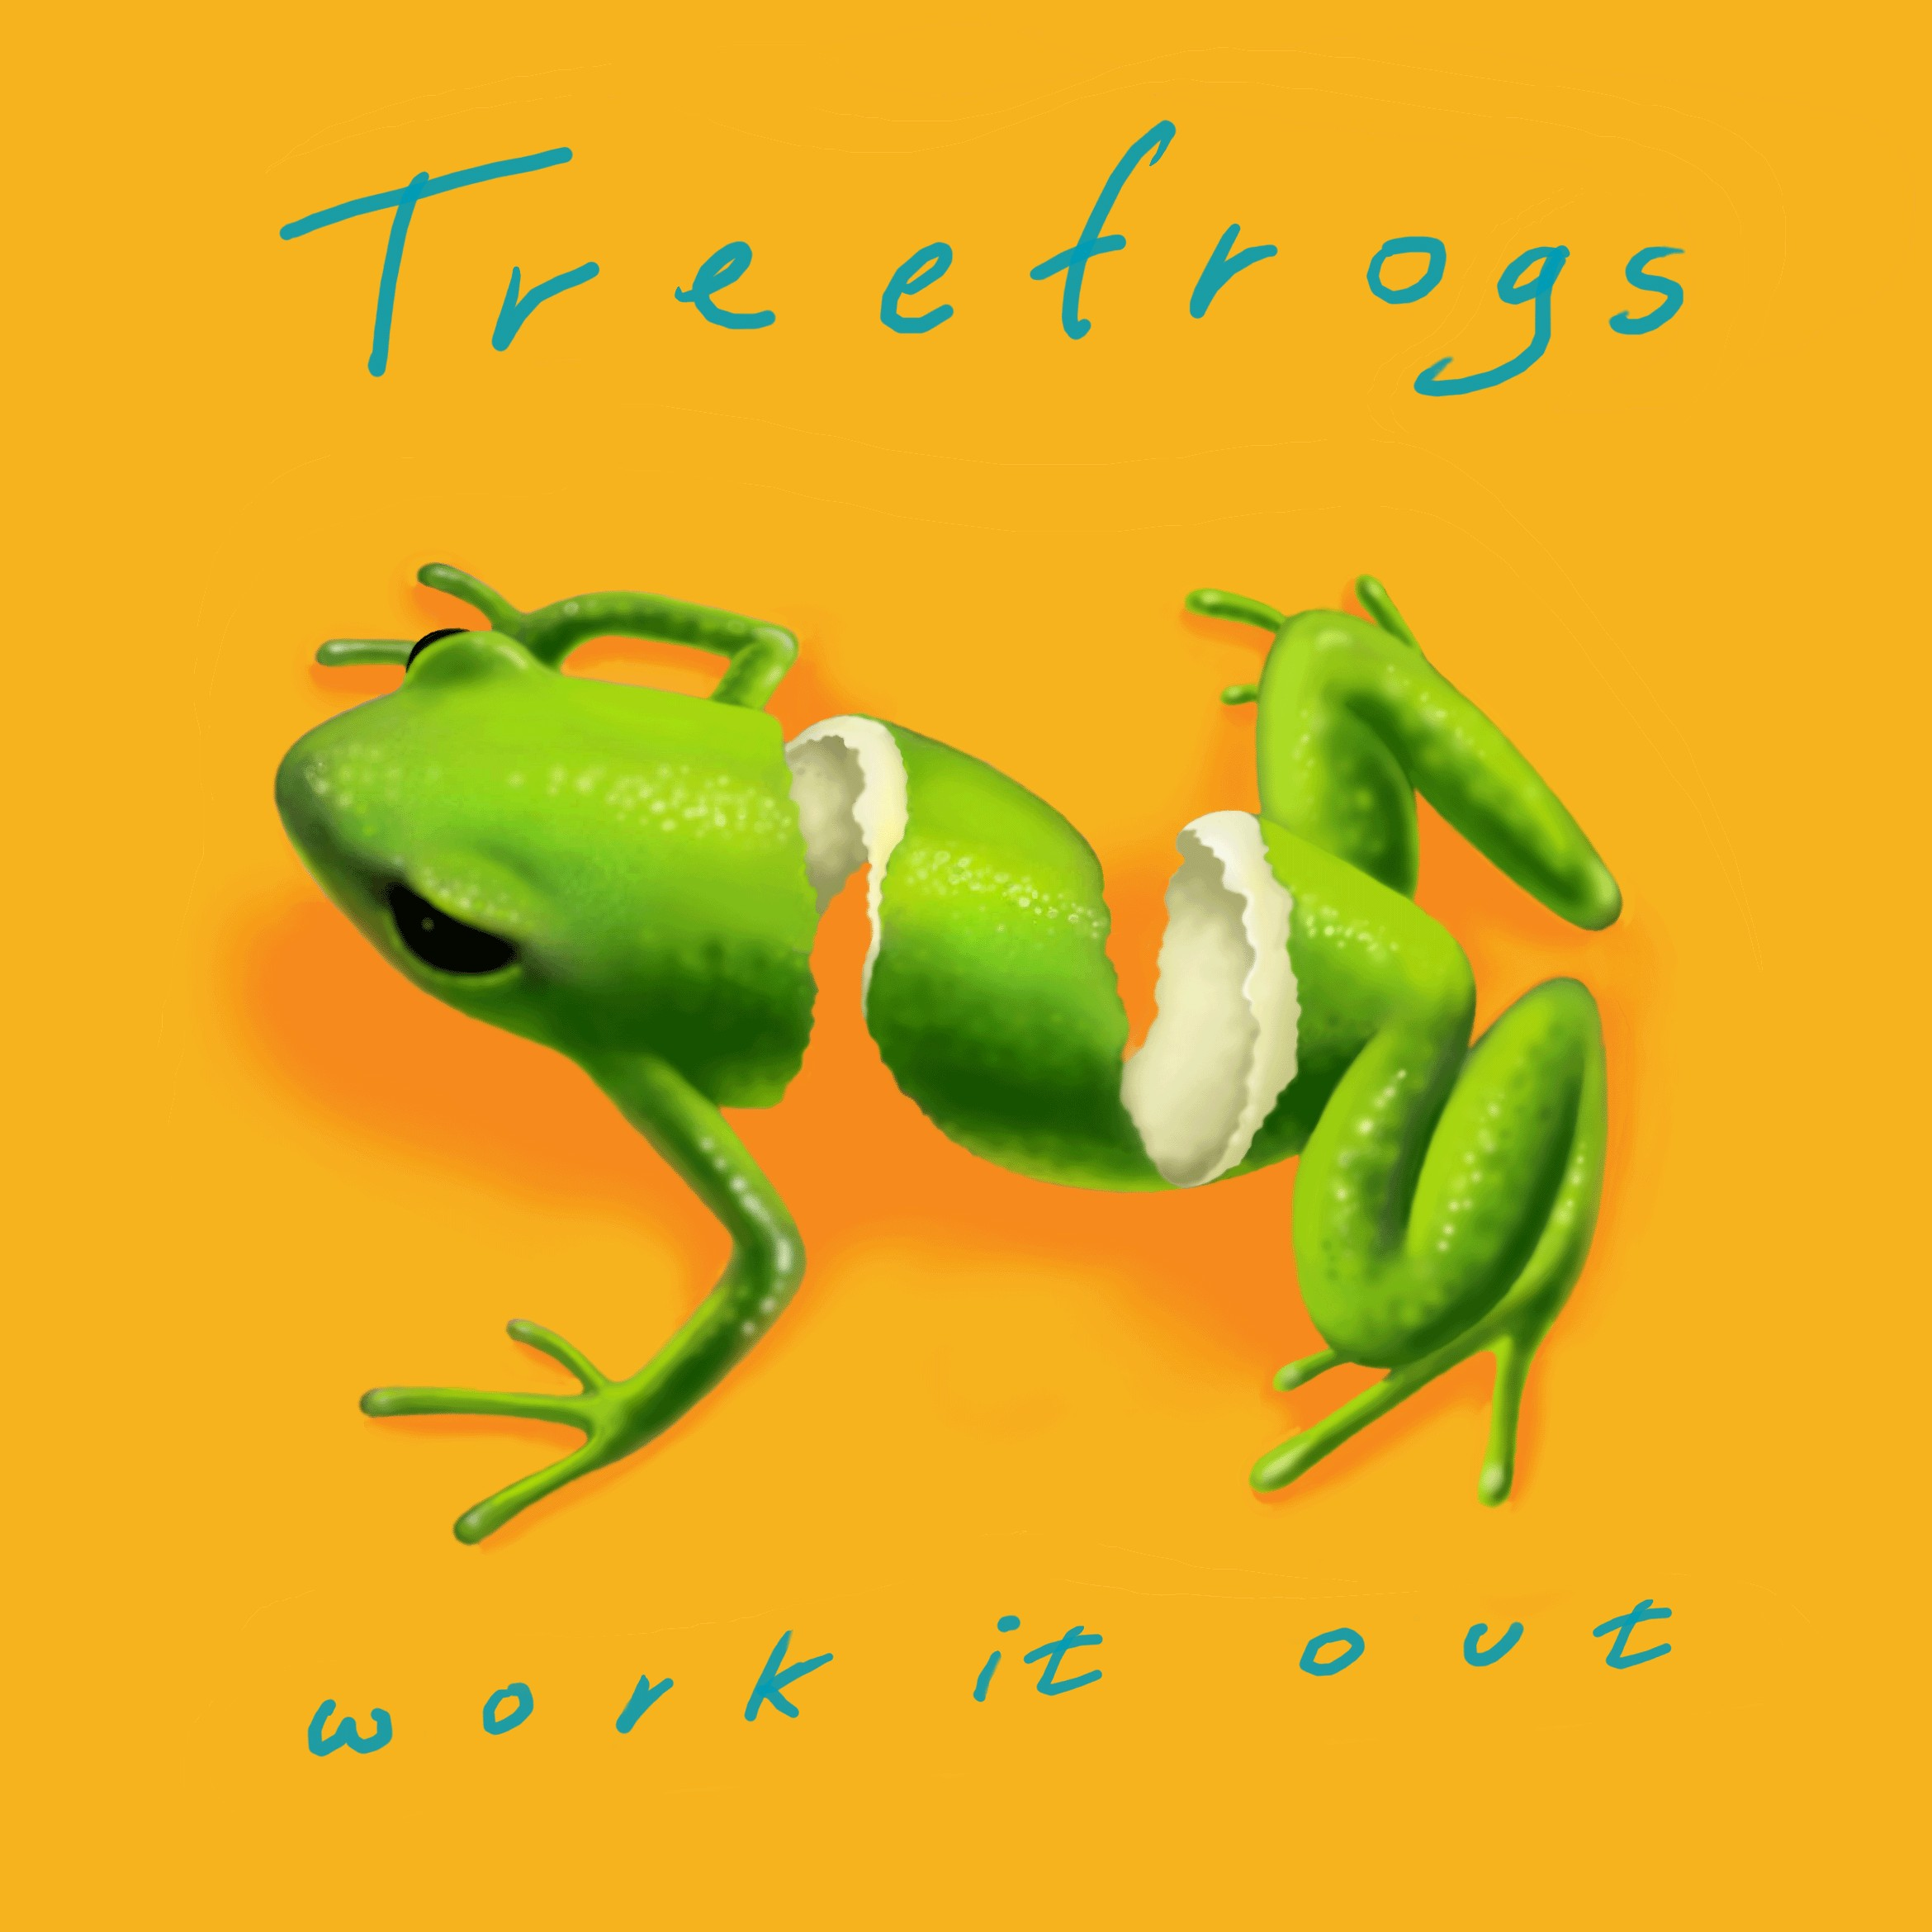 Frog-4[1]